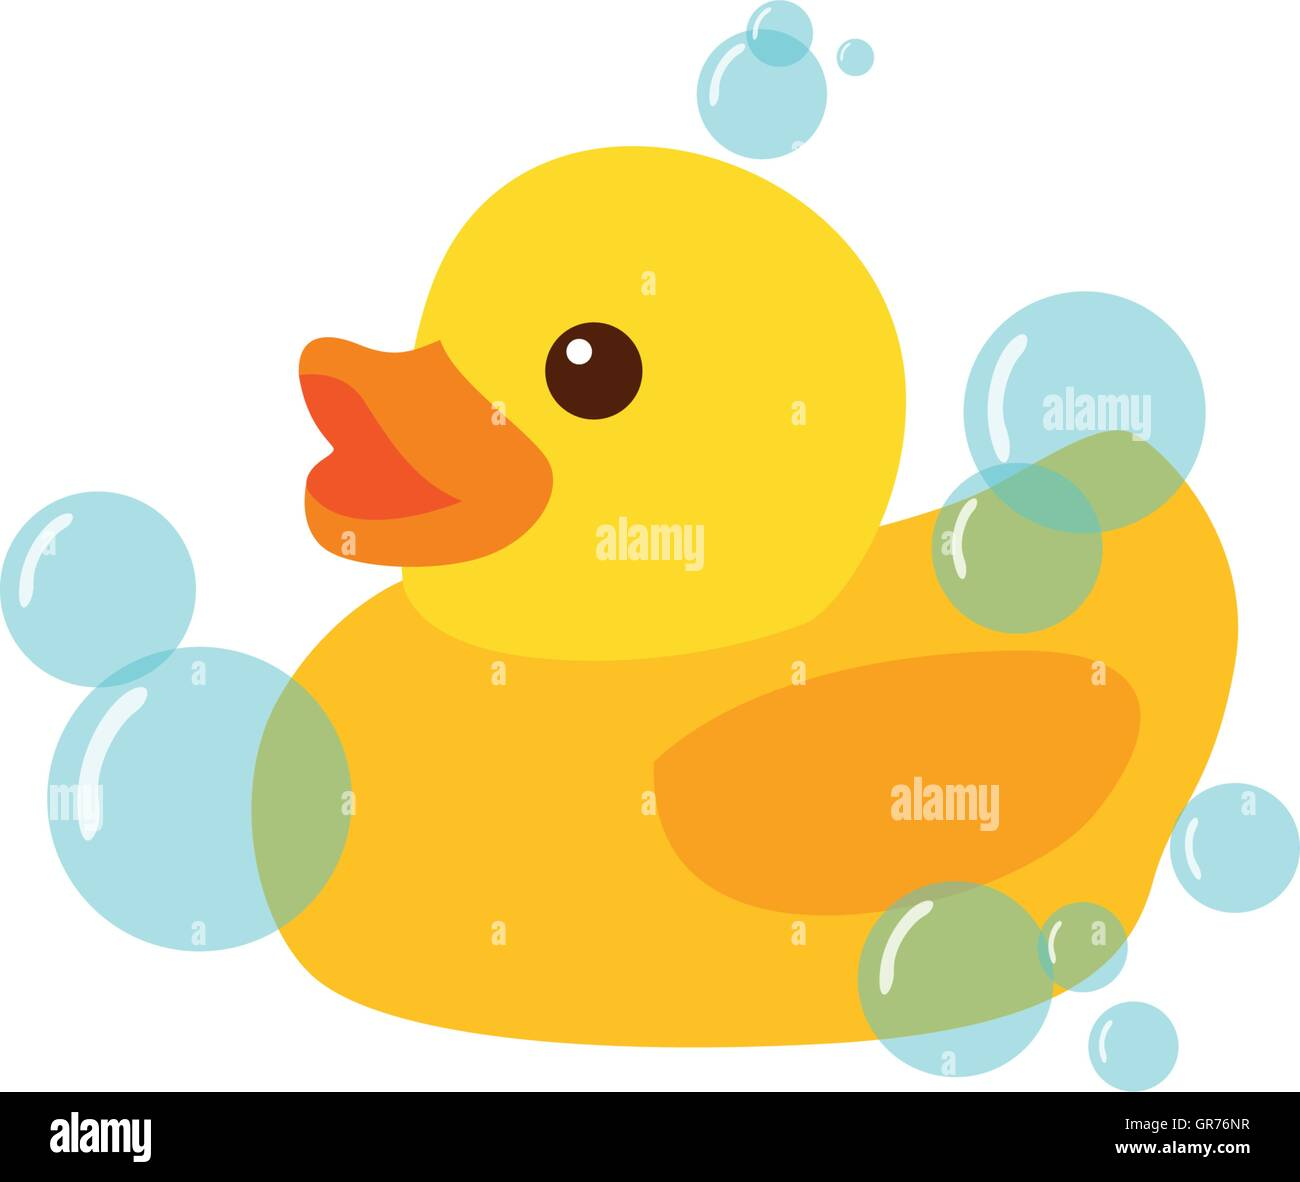 yellow rubber duck icon vector illustration clipart stock vector art rh alamy com rubber duck clip art rubber ducky clipart black and white